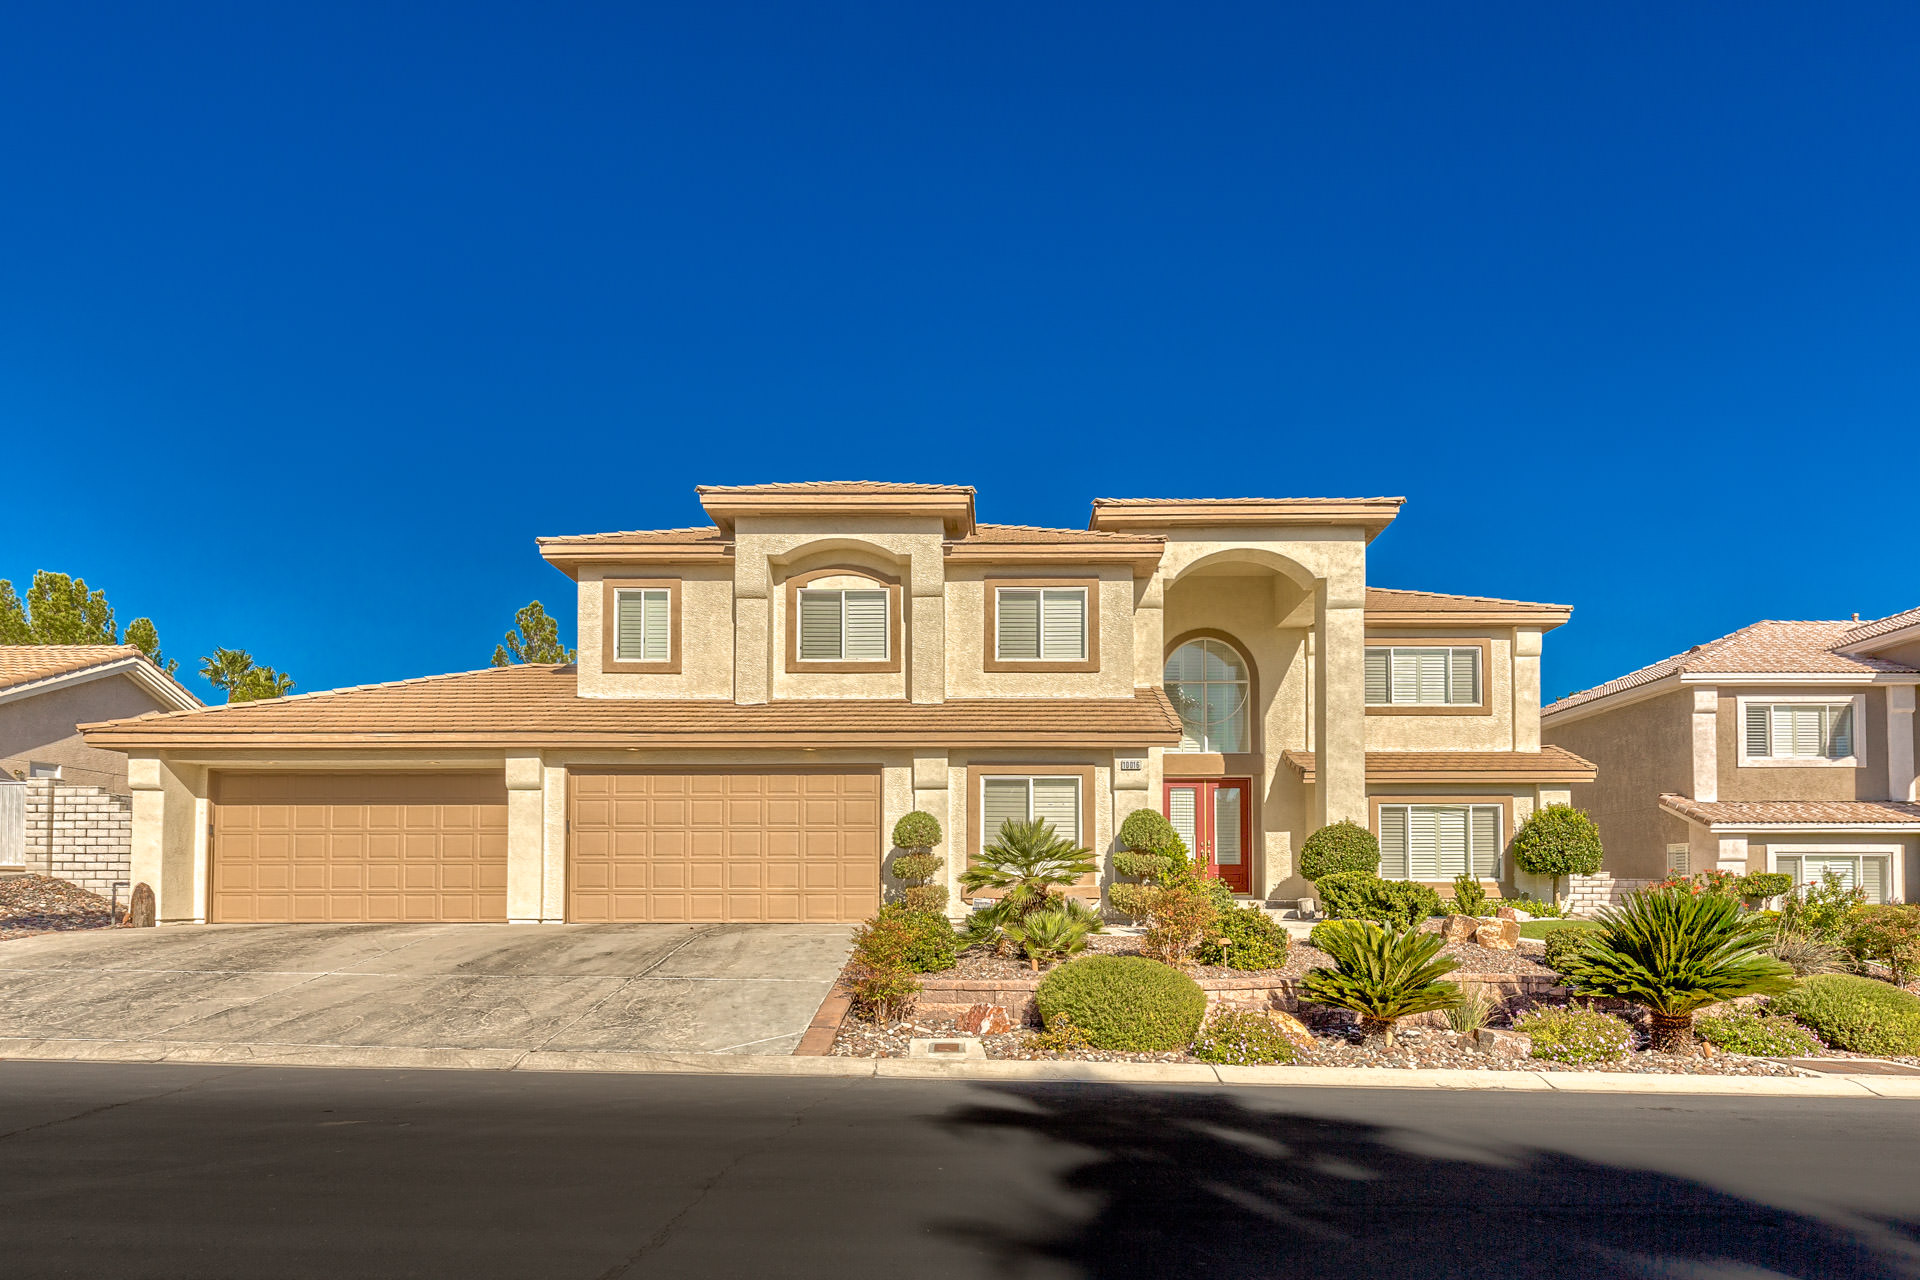 Regency at the lakes las vegas homes for sale for Las vegas luxury homes for sale